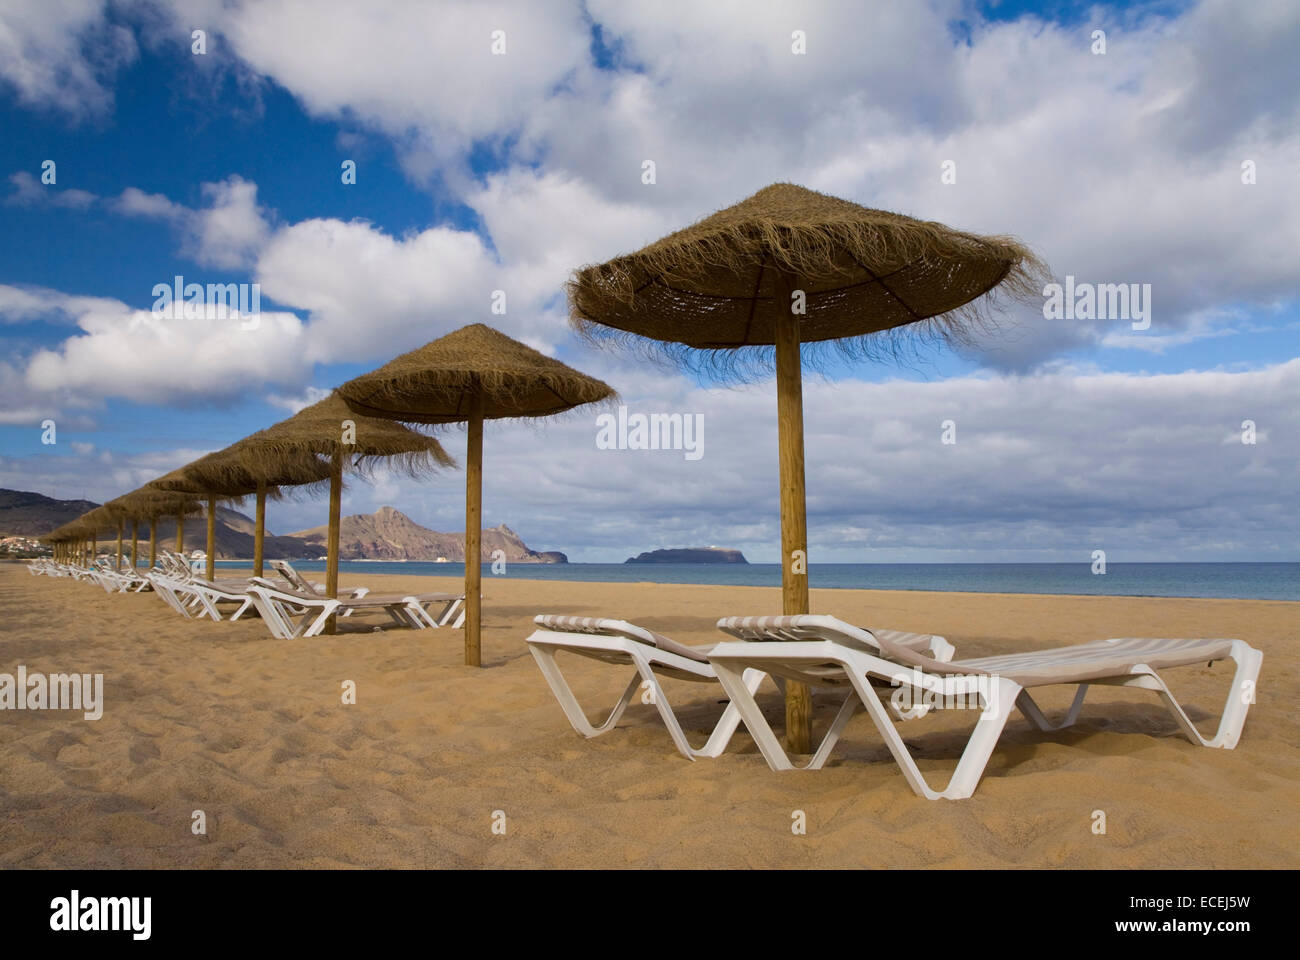 Sun loungers and parasols on the beach at Porto Santo, Portugal - Stock Image